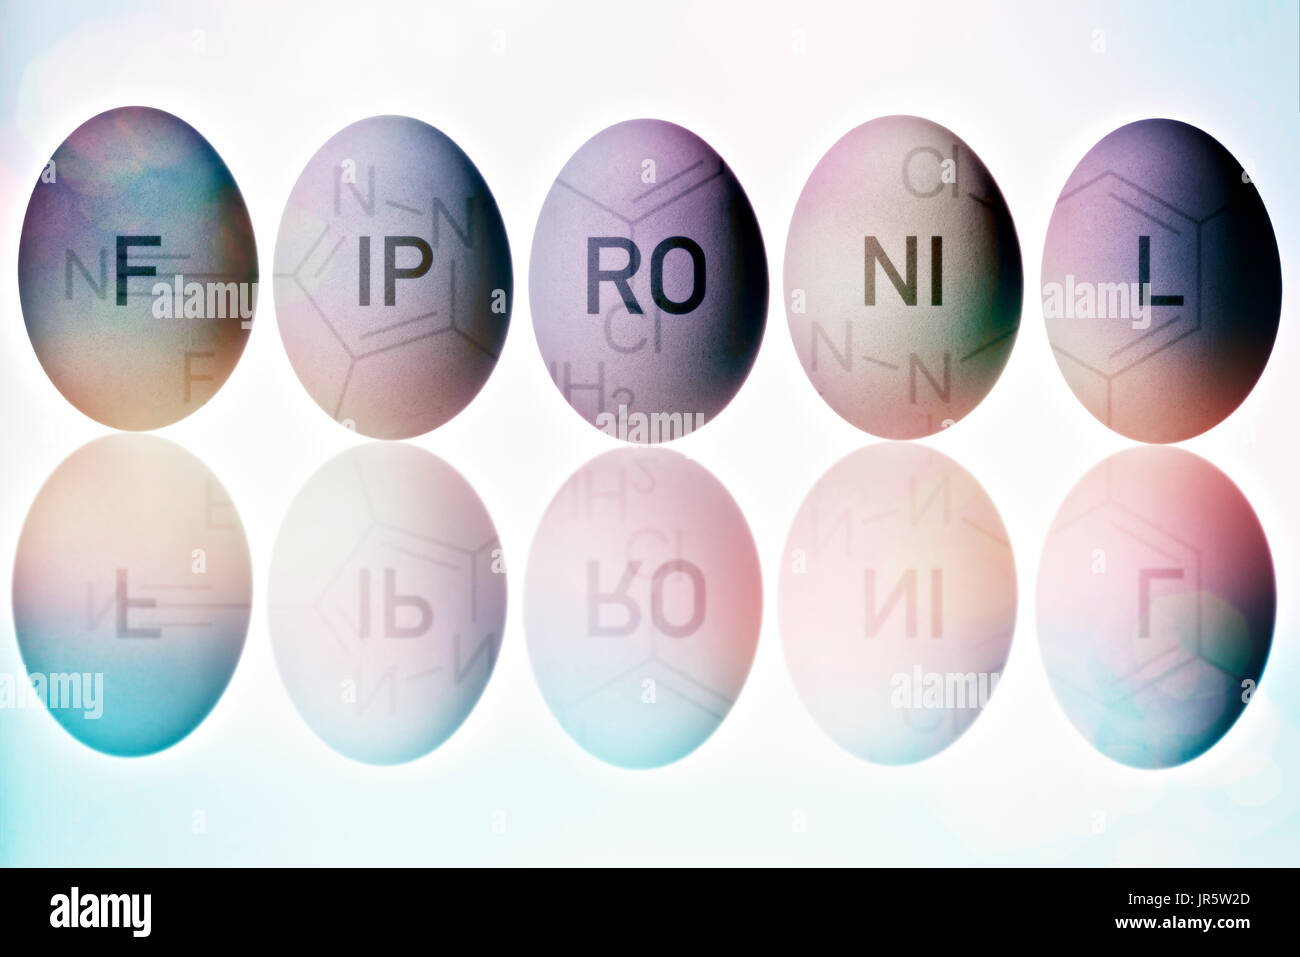 Eggs contaminated with fipronil - Stock Image